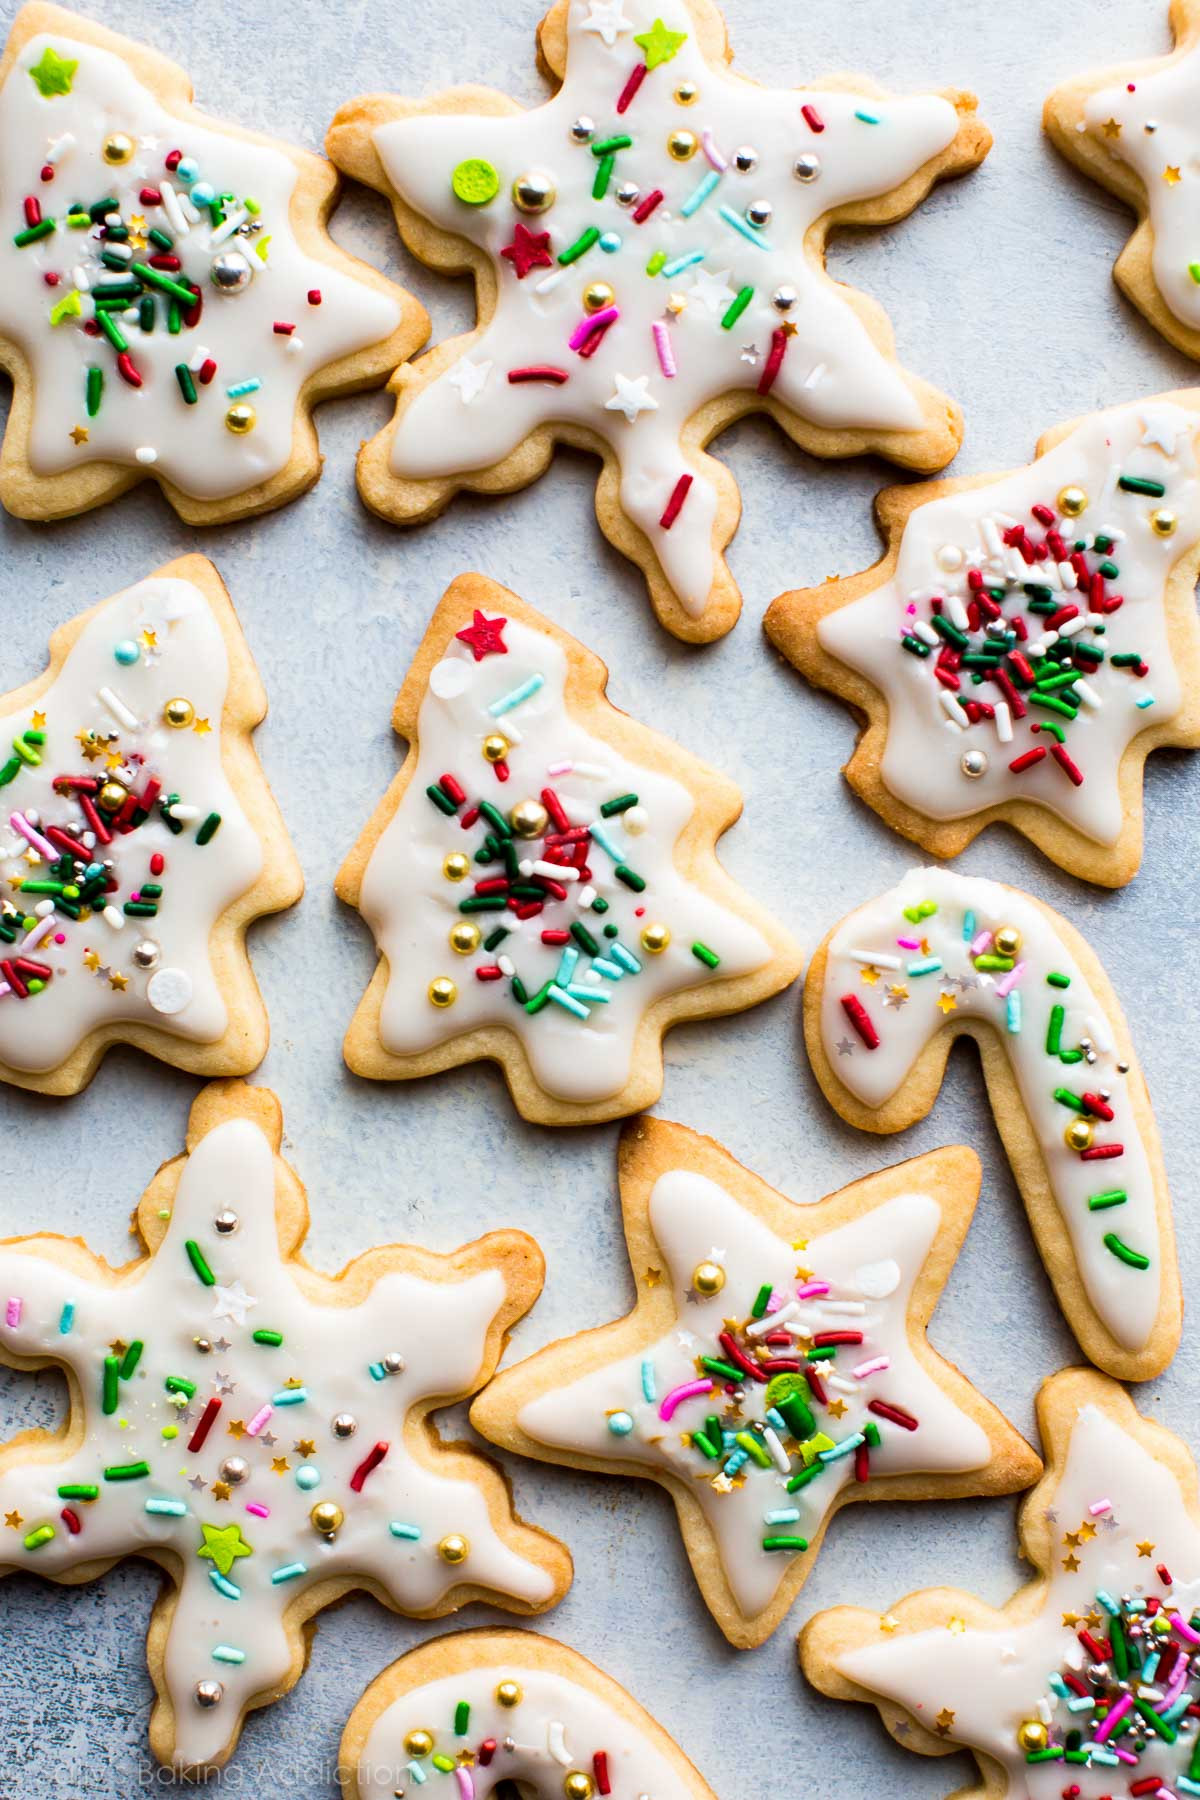 Recipes For Christmas Sugar Cookies  Holiday Cut Out Sugar Cookies with Easy Icing Sallys